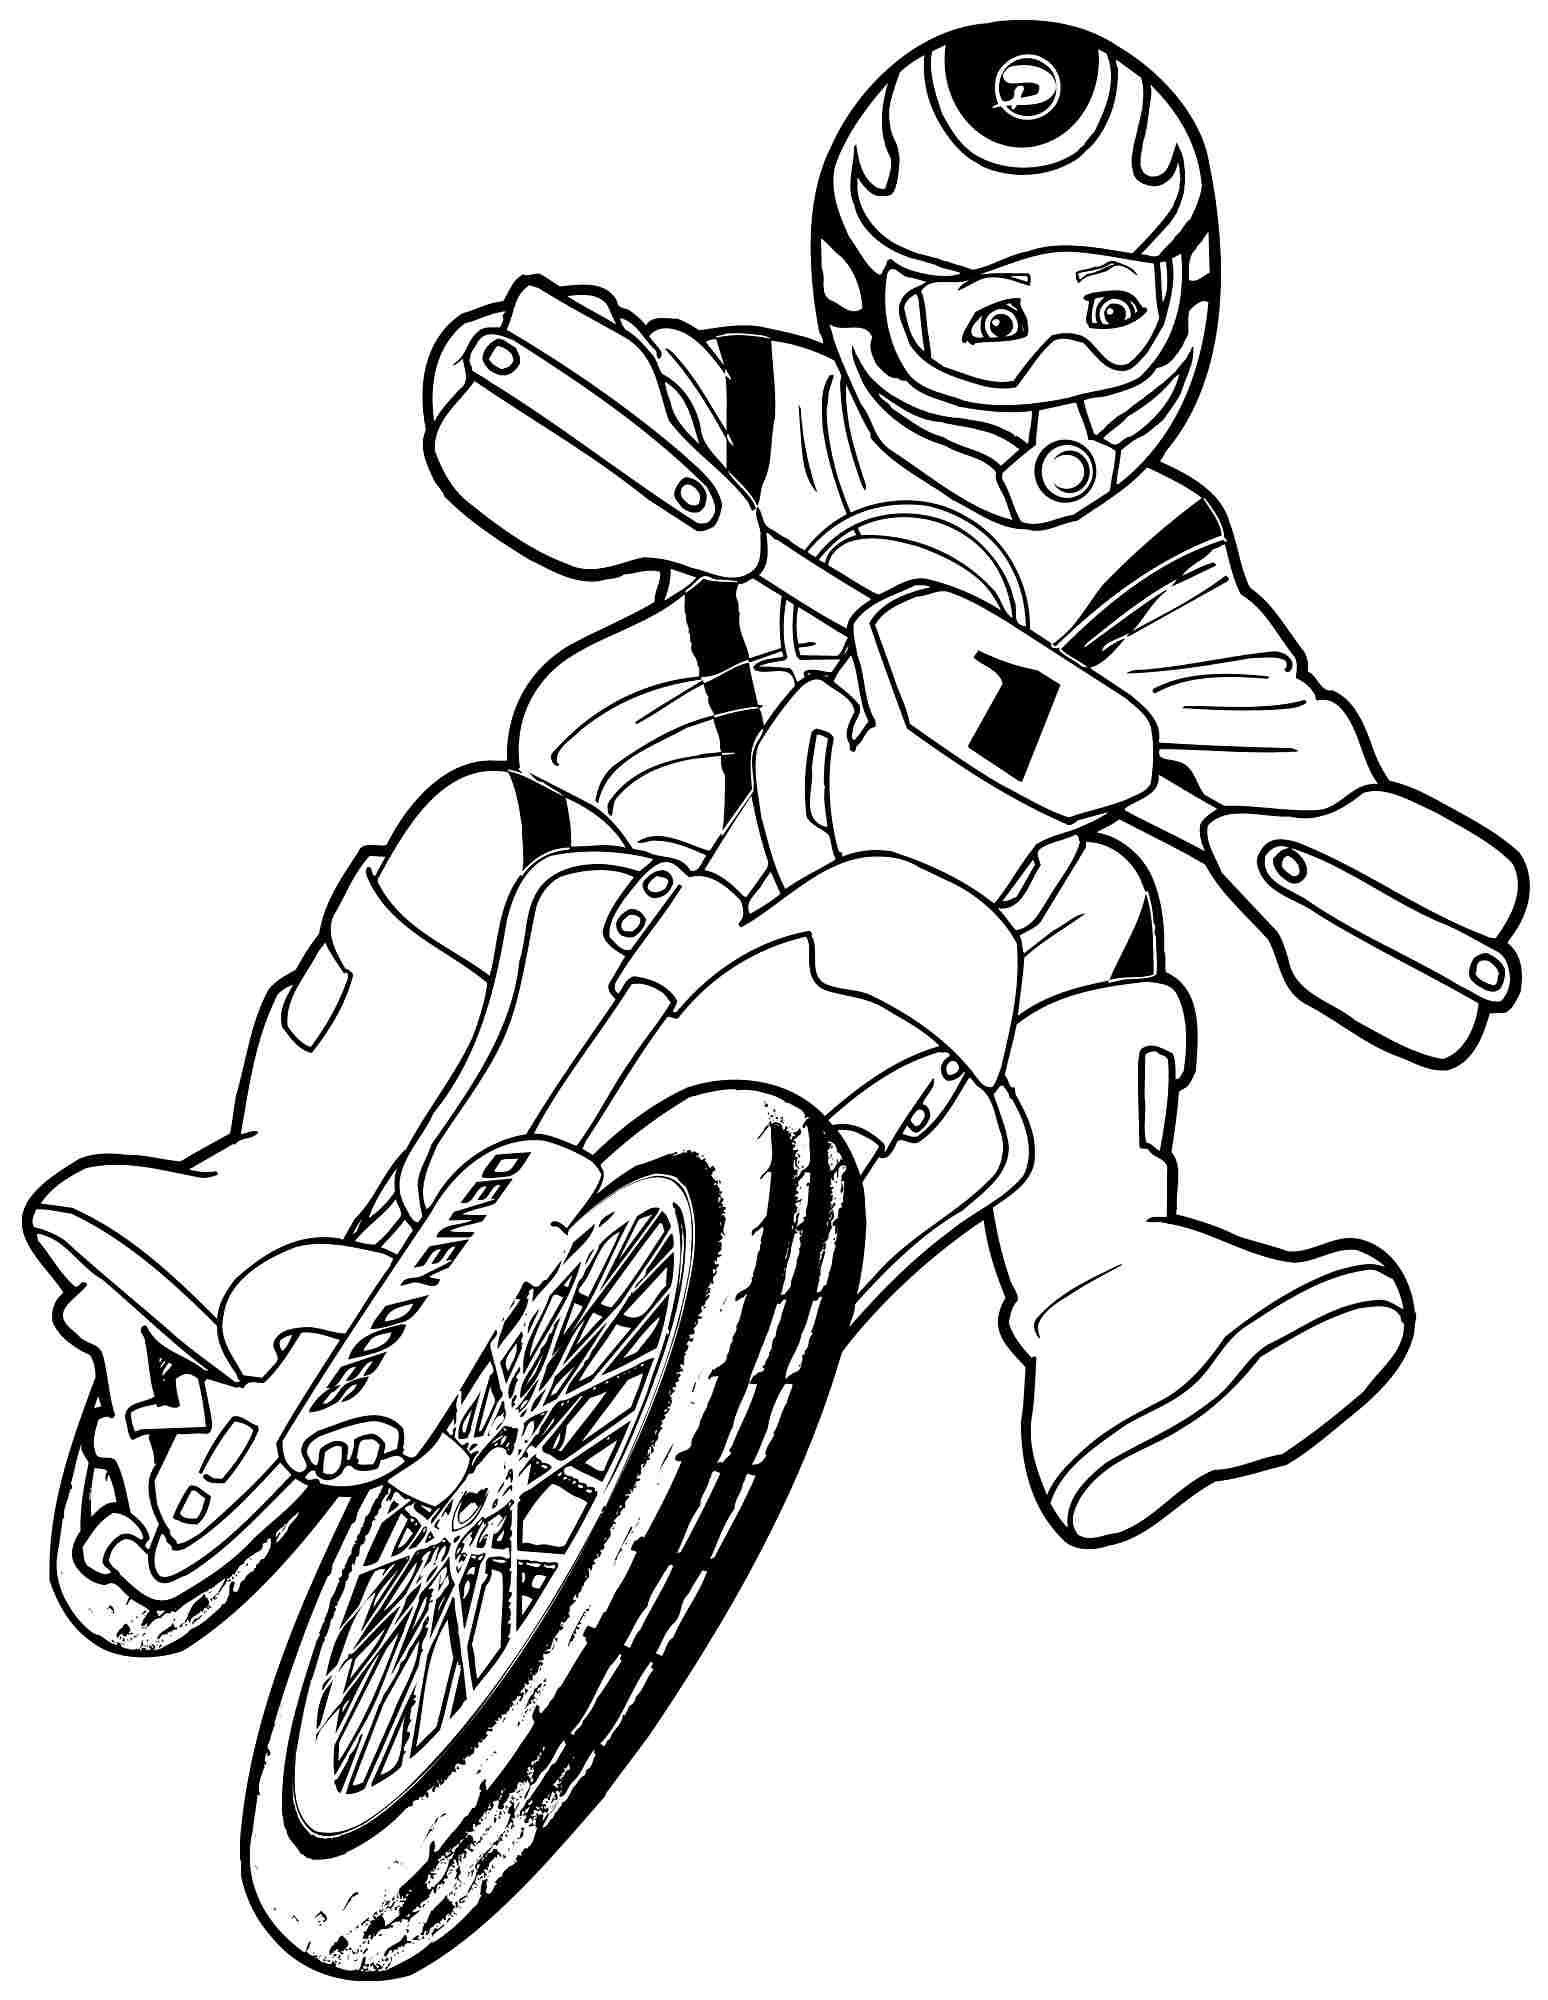 Free transportation motorcycle colouring pages for kindergarten